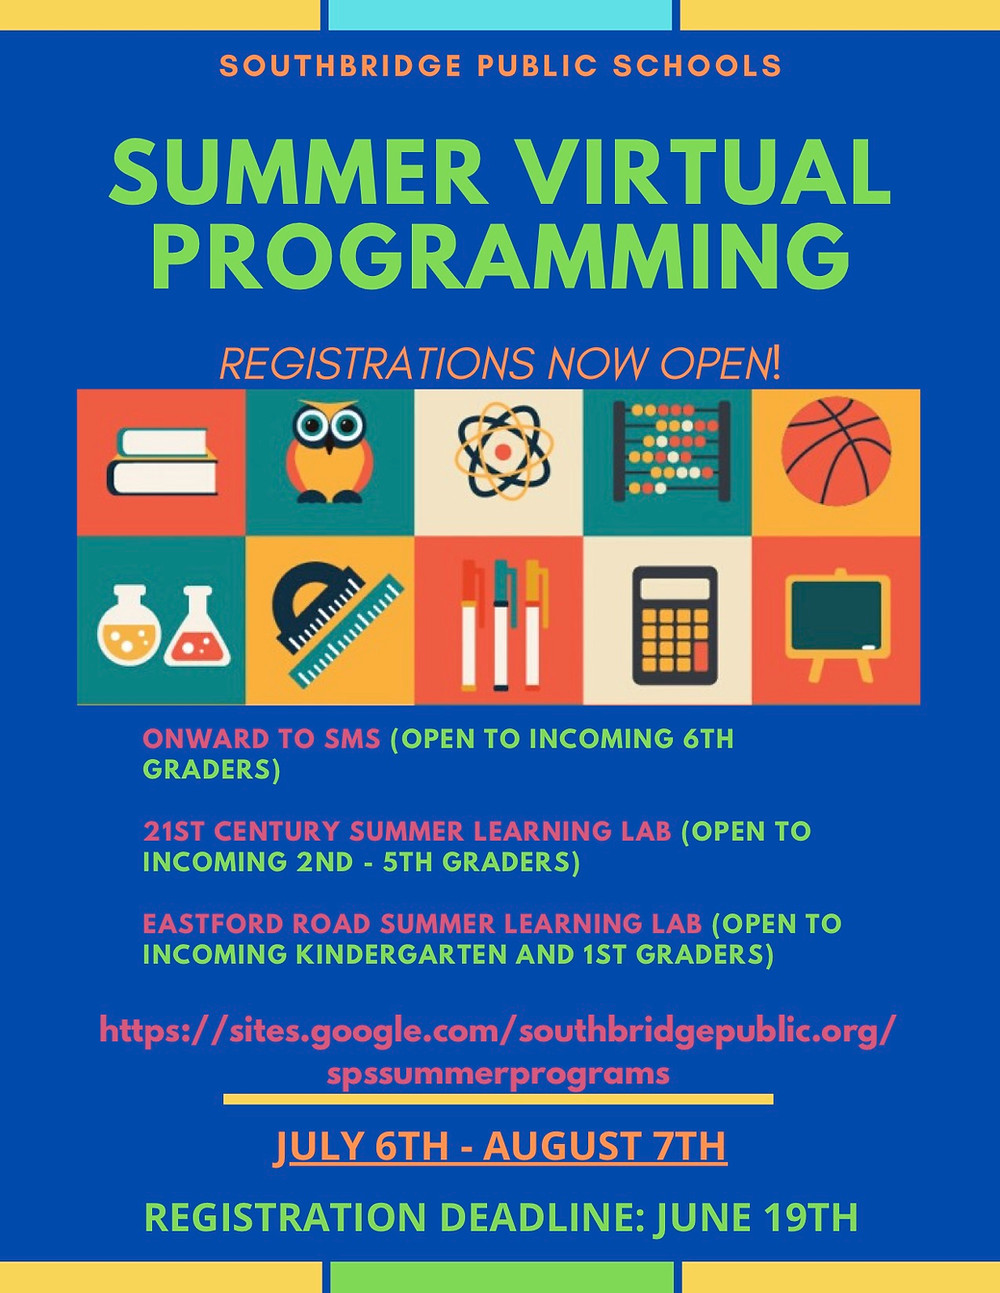 Flyer for the Southbridge Public Schools summer 2020 program in English.  All information is available in this post.